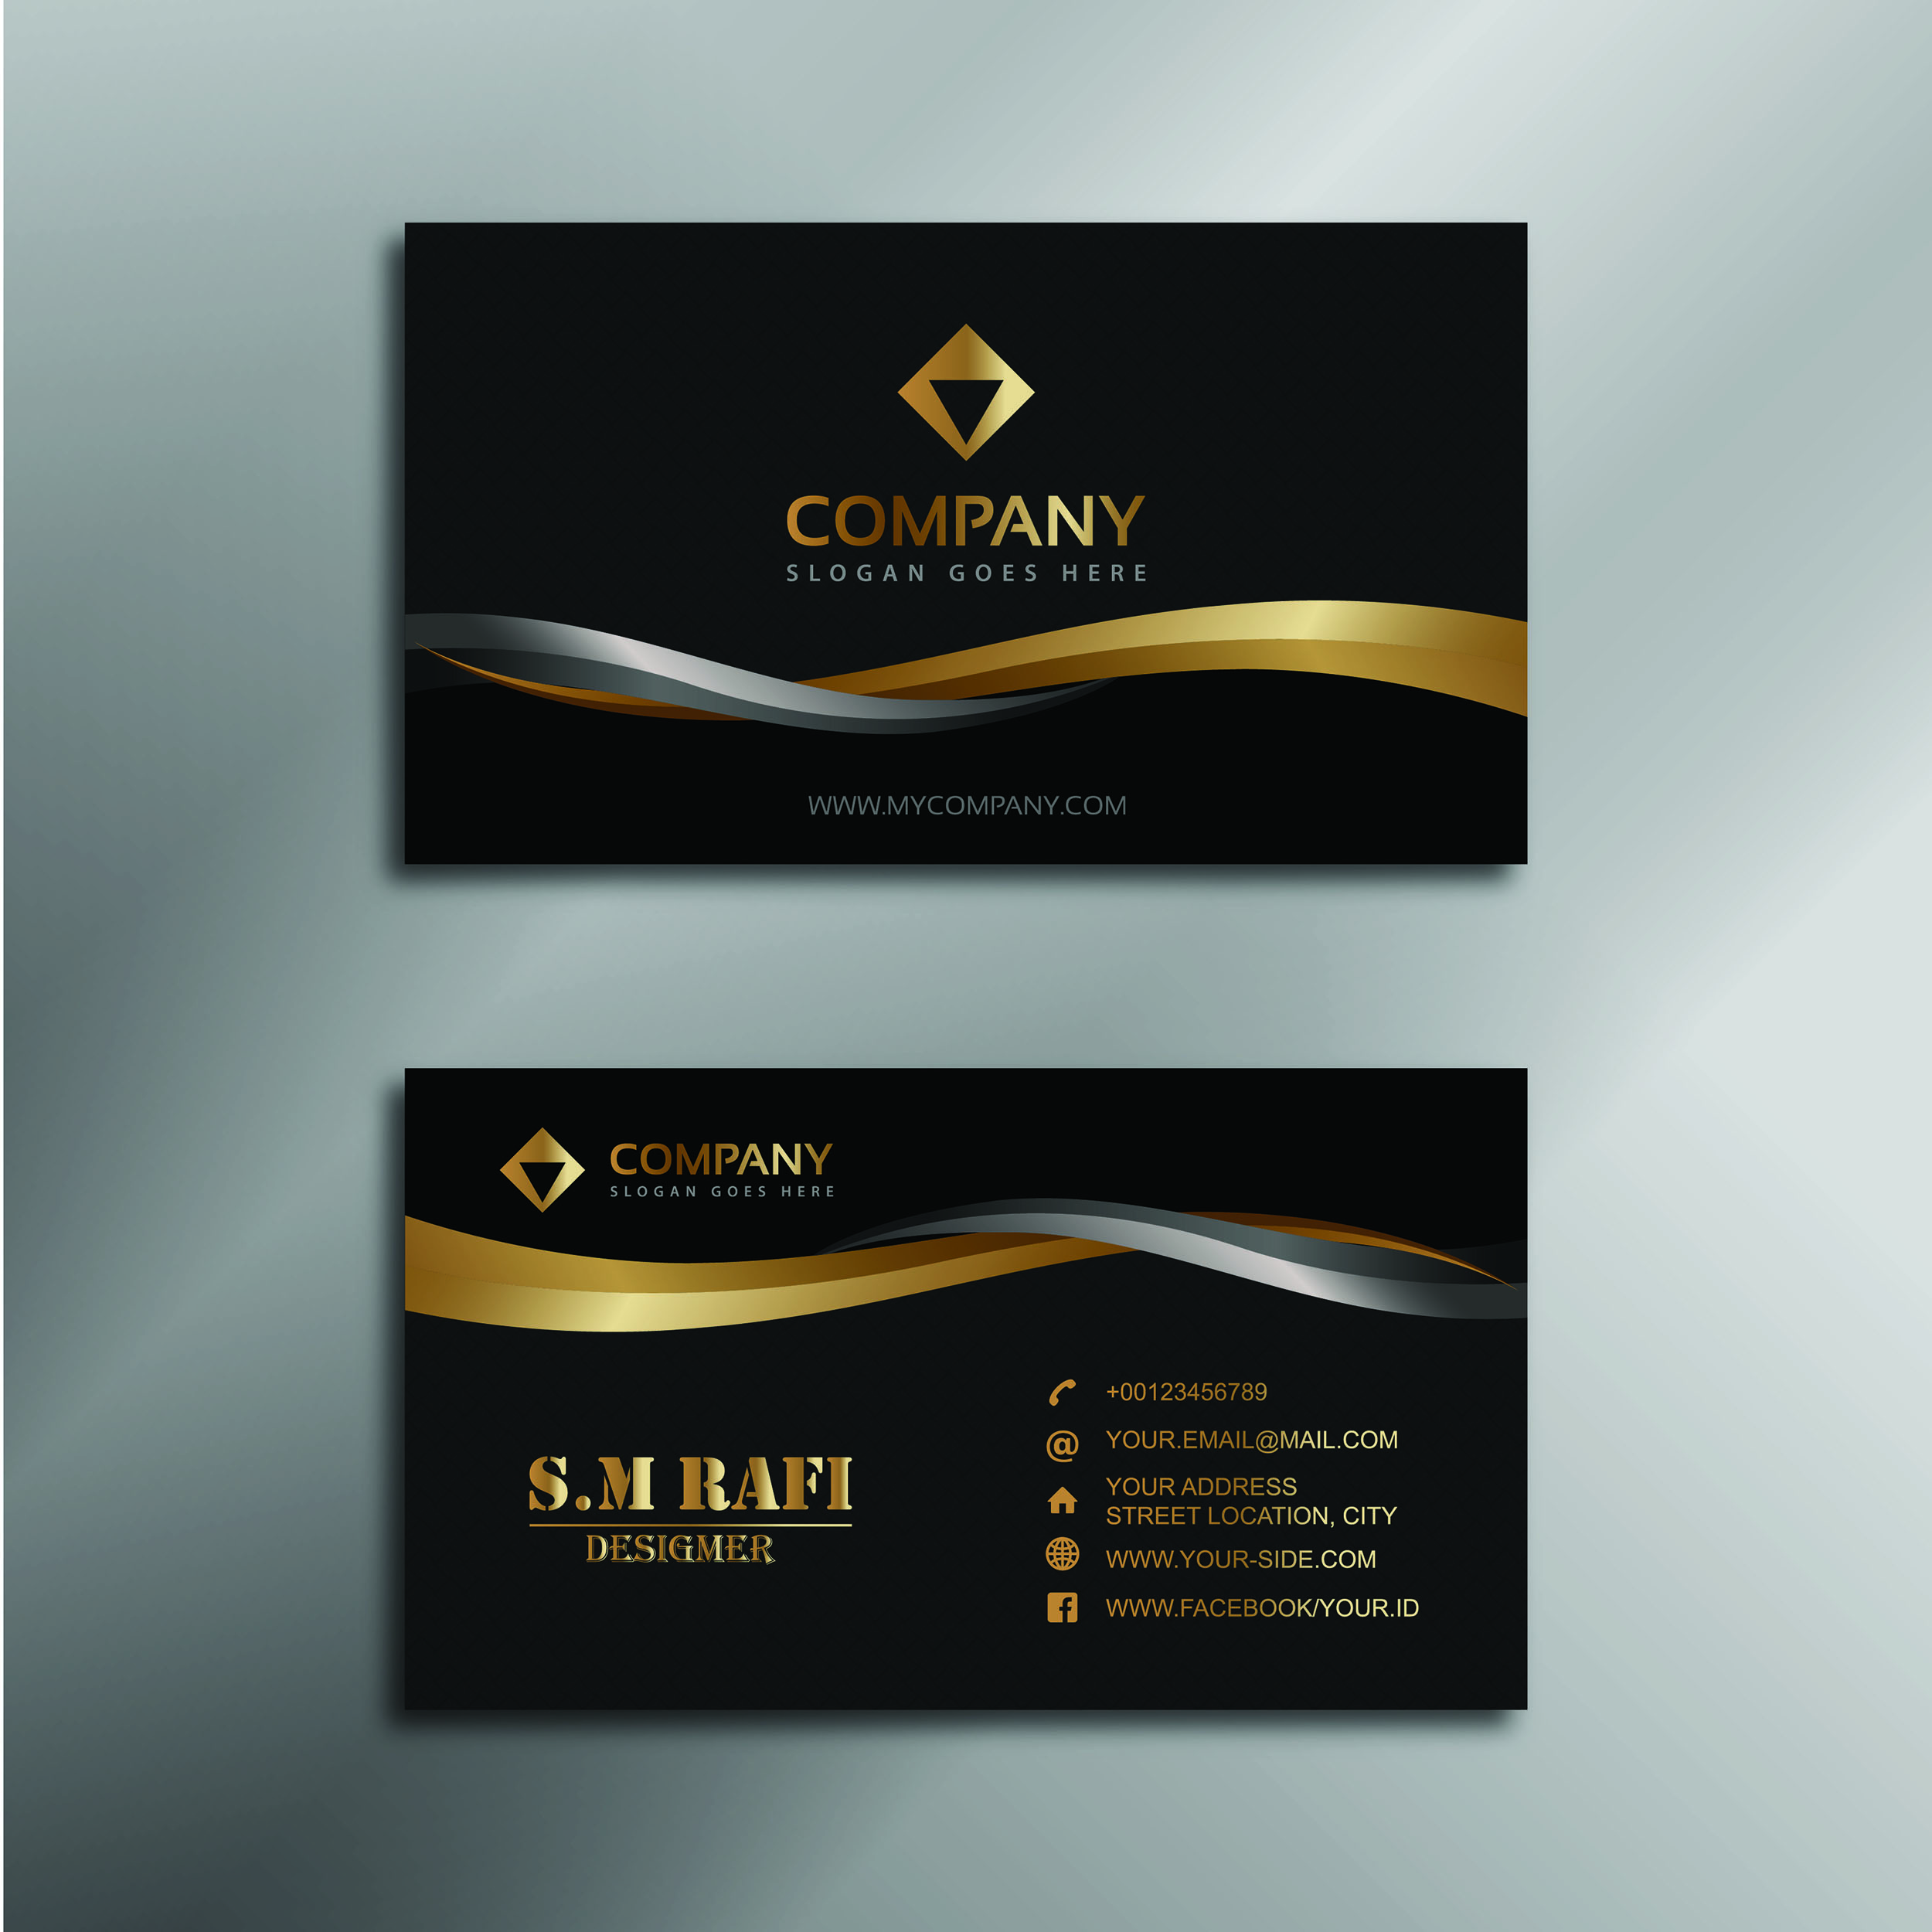 Professional Business Card Design for $5